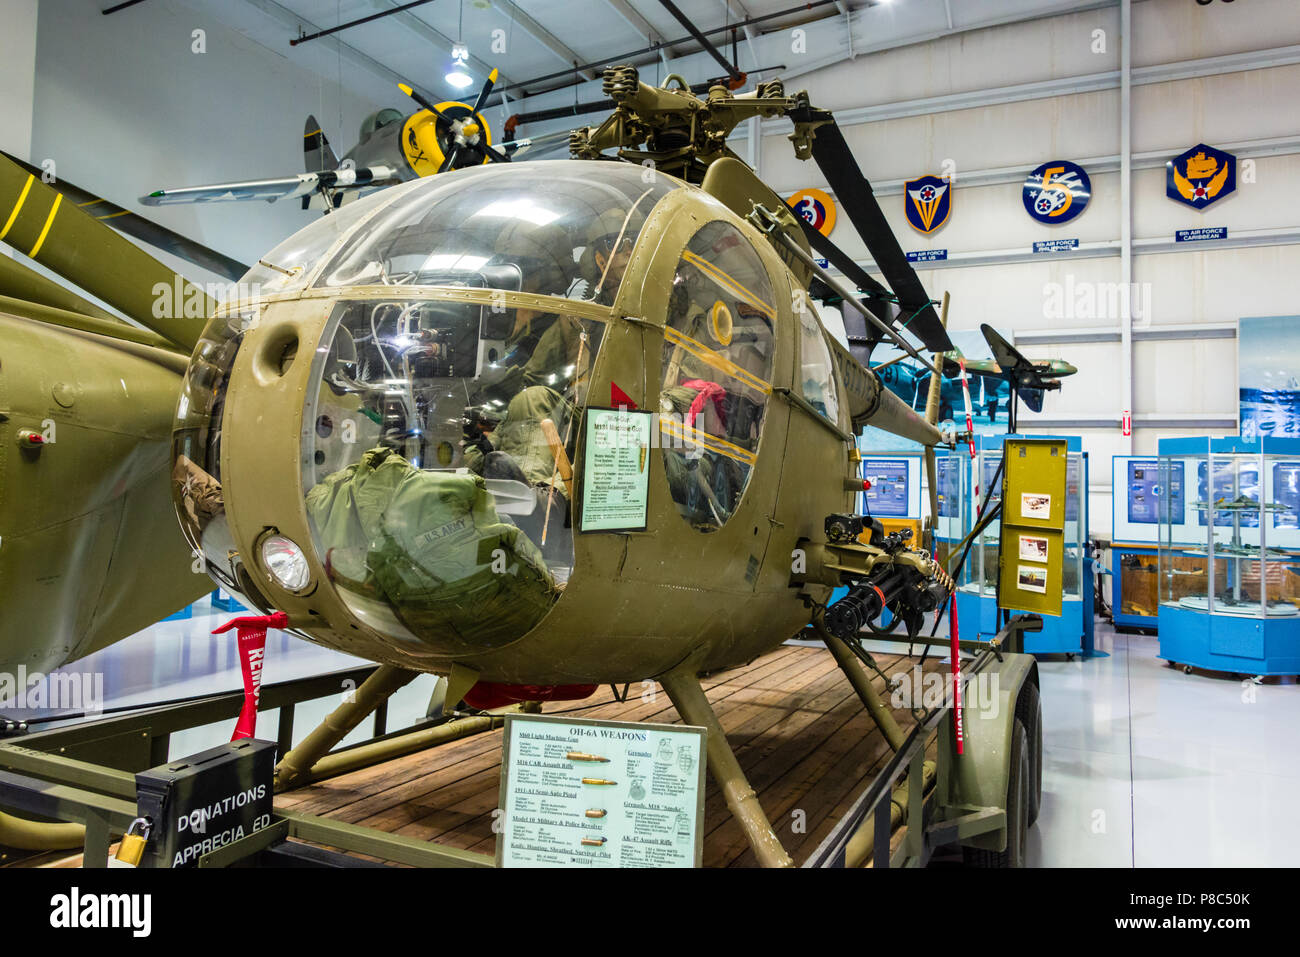 Hughes OH-6A Cayuse 'Charlie Chopper' - Stock Image